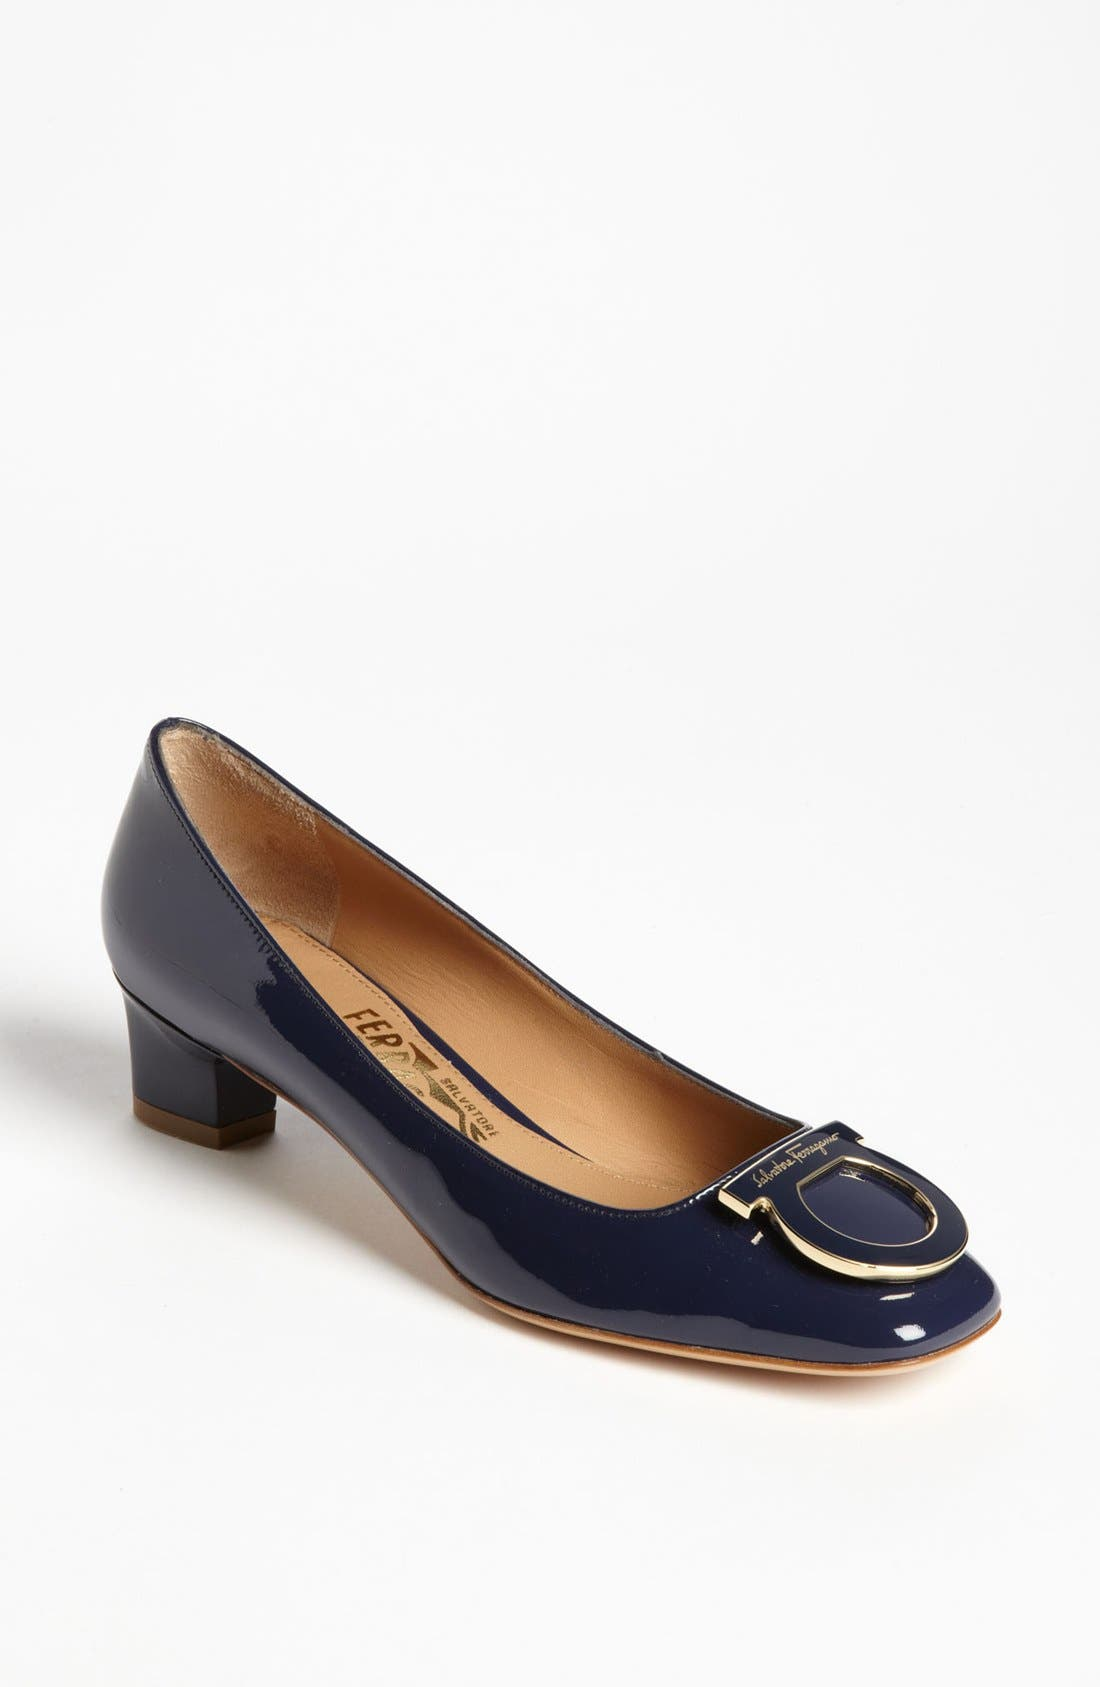 Alternate Image 1 Selected - Salvatore Ferragamo 'Sanna' Pump